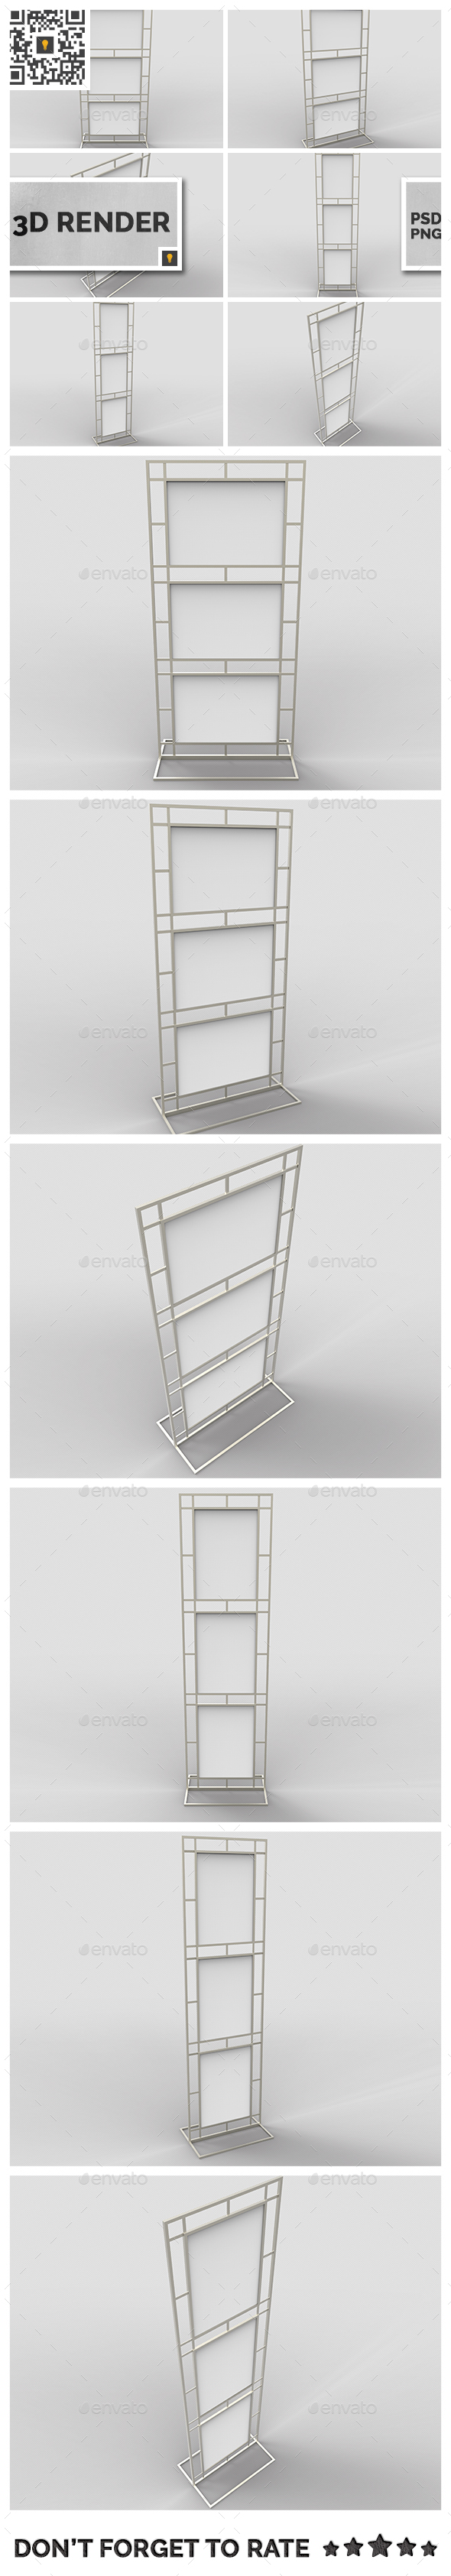 Poster Stand Display 3D Render - 3D Renders Graphics